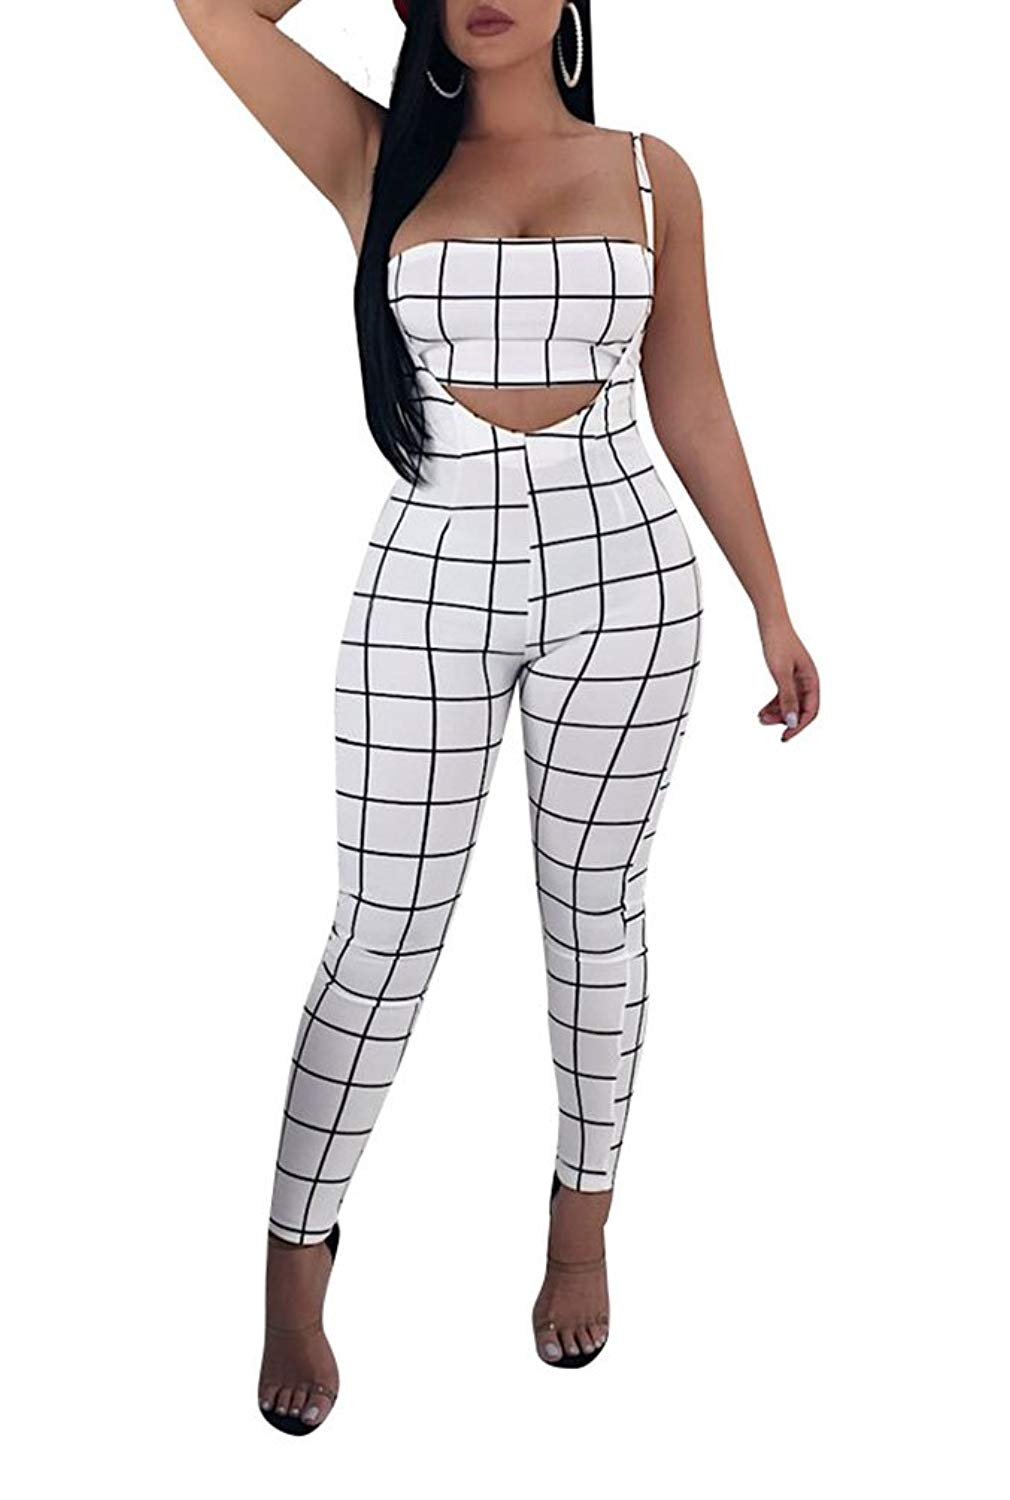 c9da4b187bfd Get Quotations · Remelon Womens Sexy Plaid Print 2 Piece Outfits Tube Crop  Top Strap Sleeveless Suspender Jumpsuits Overalls